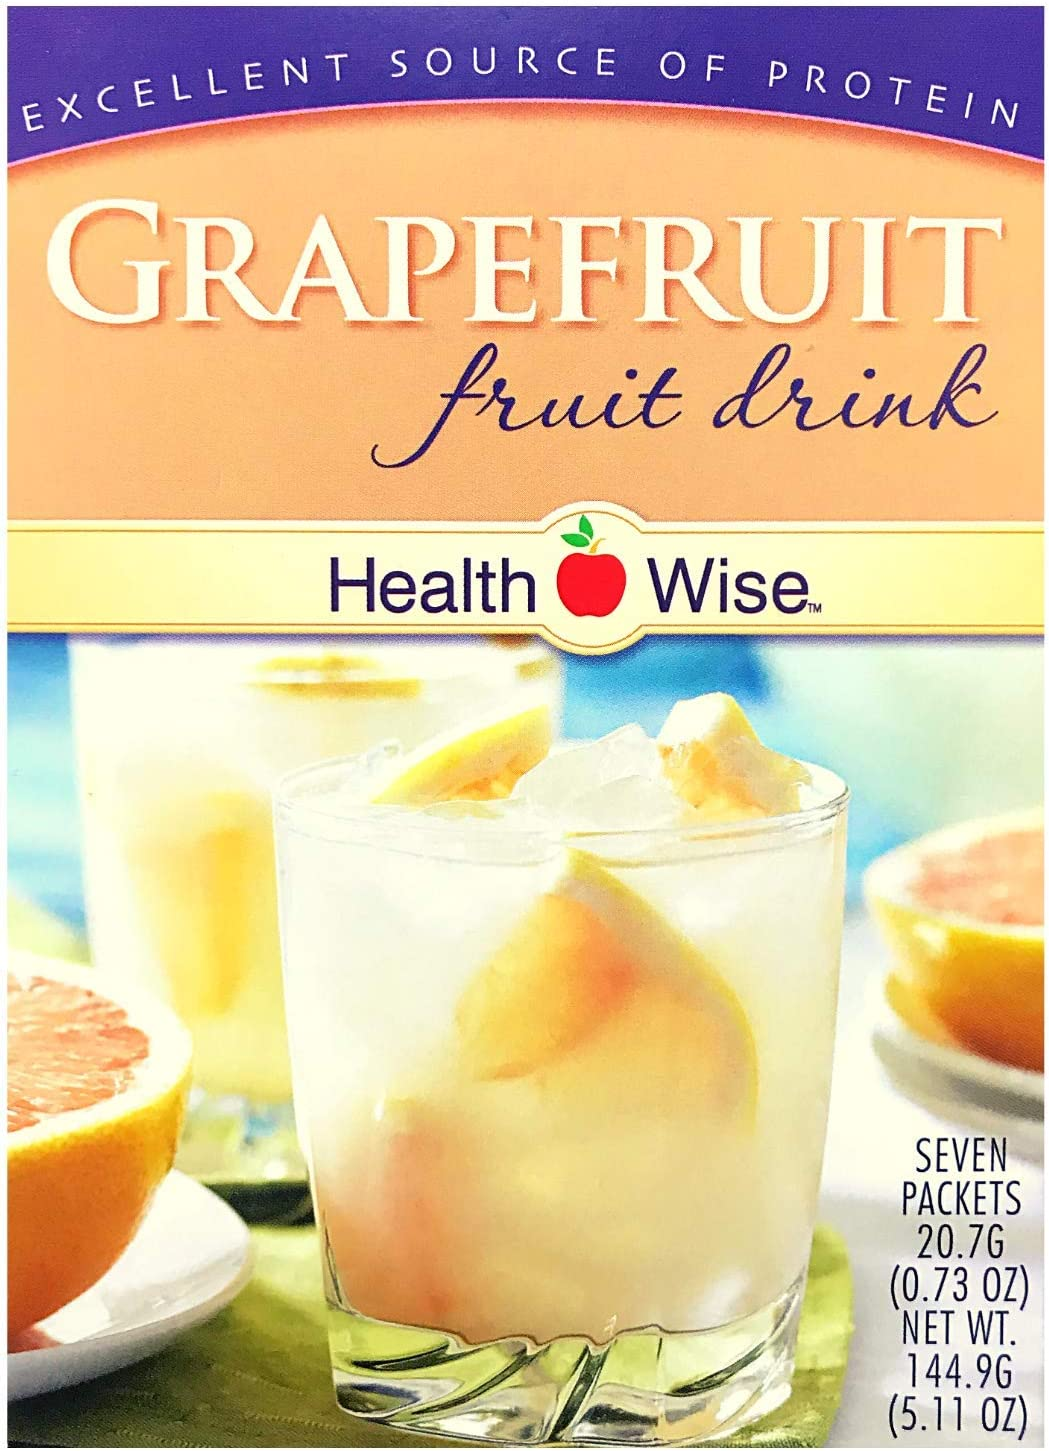 Healthwise - Grapefruit Diet Fruit Drink | Healthy Protein Drink, Appetite Suppressant | High Protein, Fat Free, Low Carb, Low Calorie, Sugar Free (7/Box)